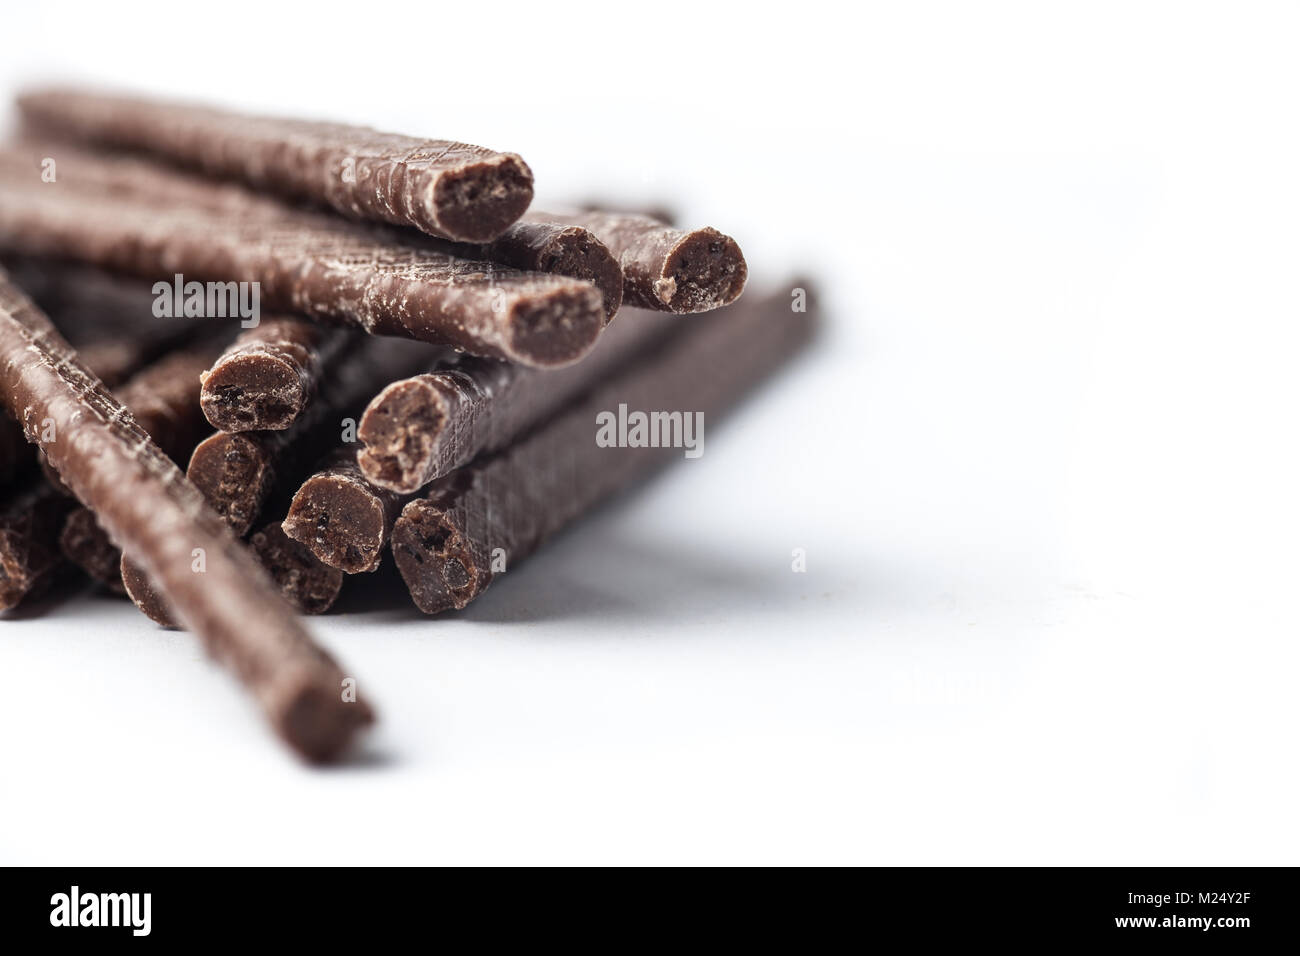 Chocolate Flavoured Stick Candy close up on white background - Stock Image